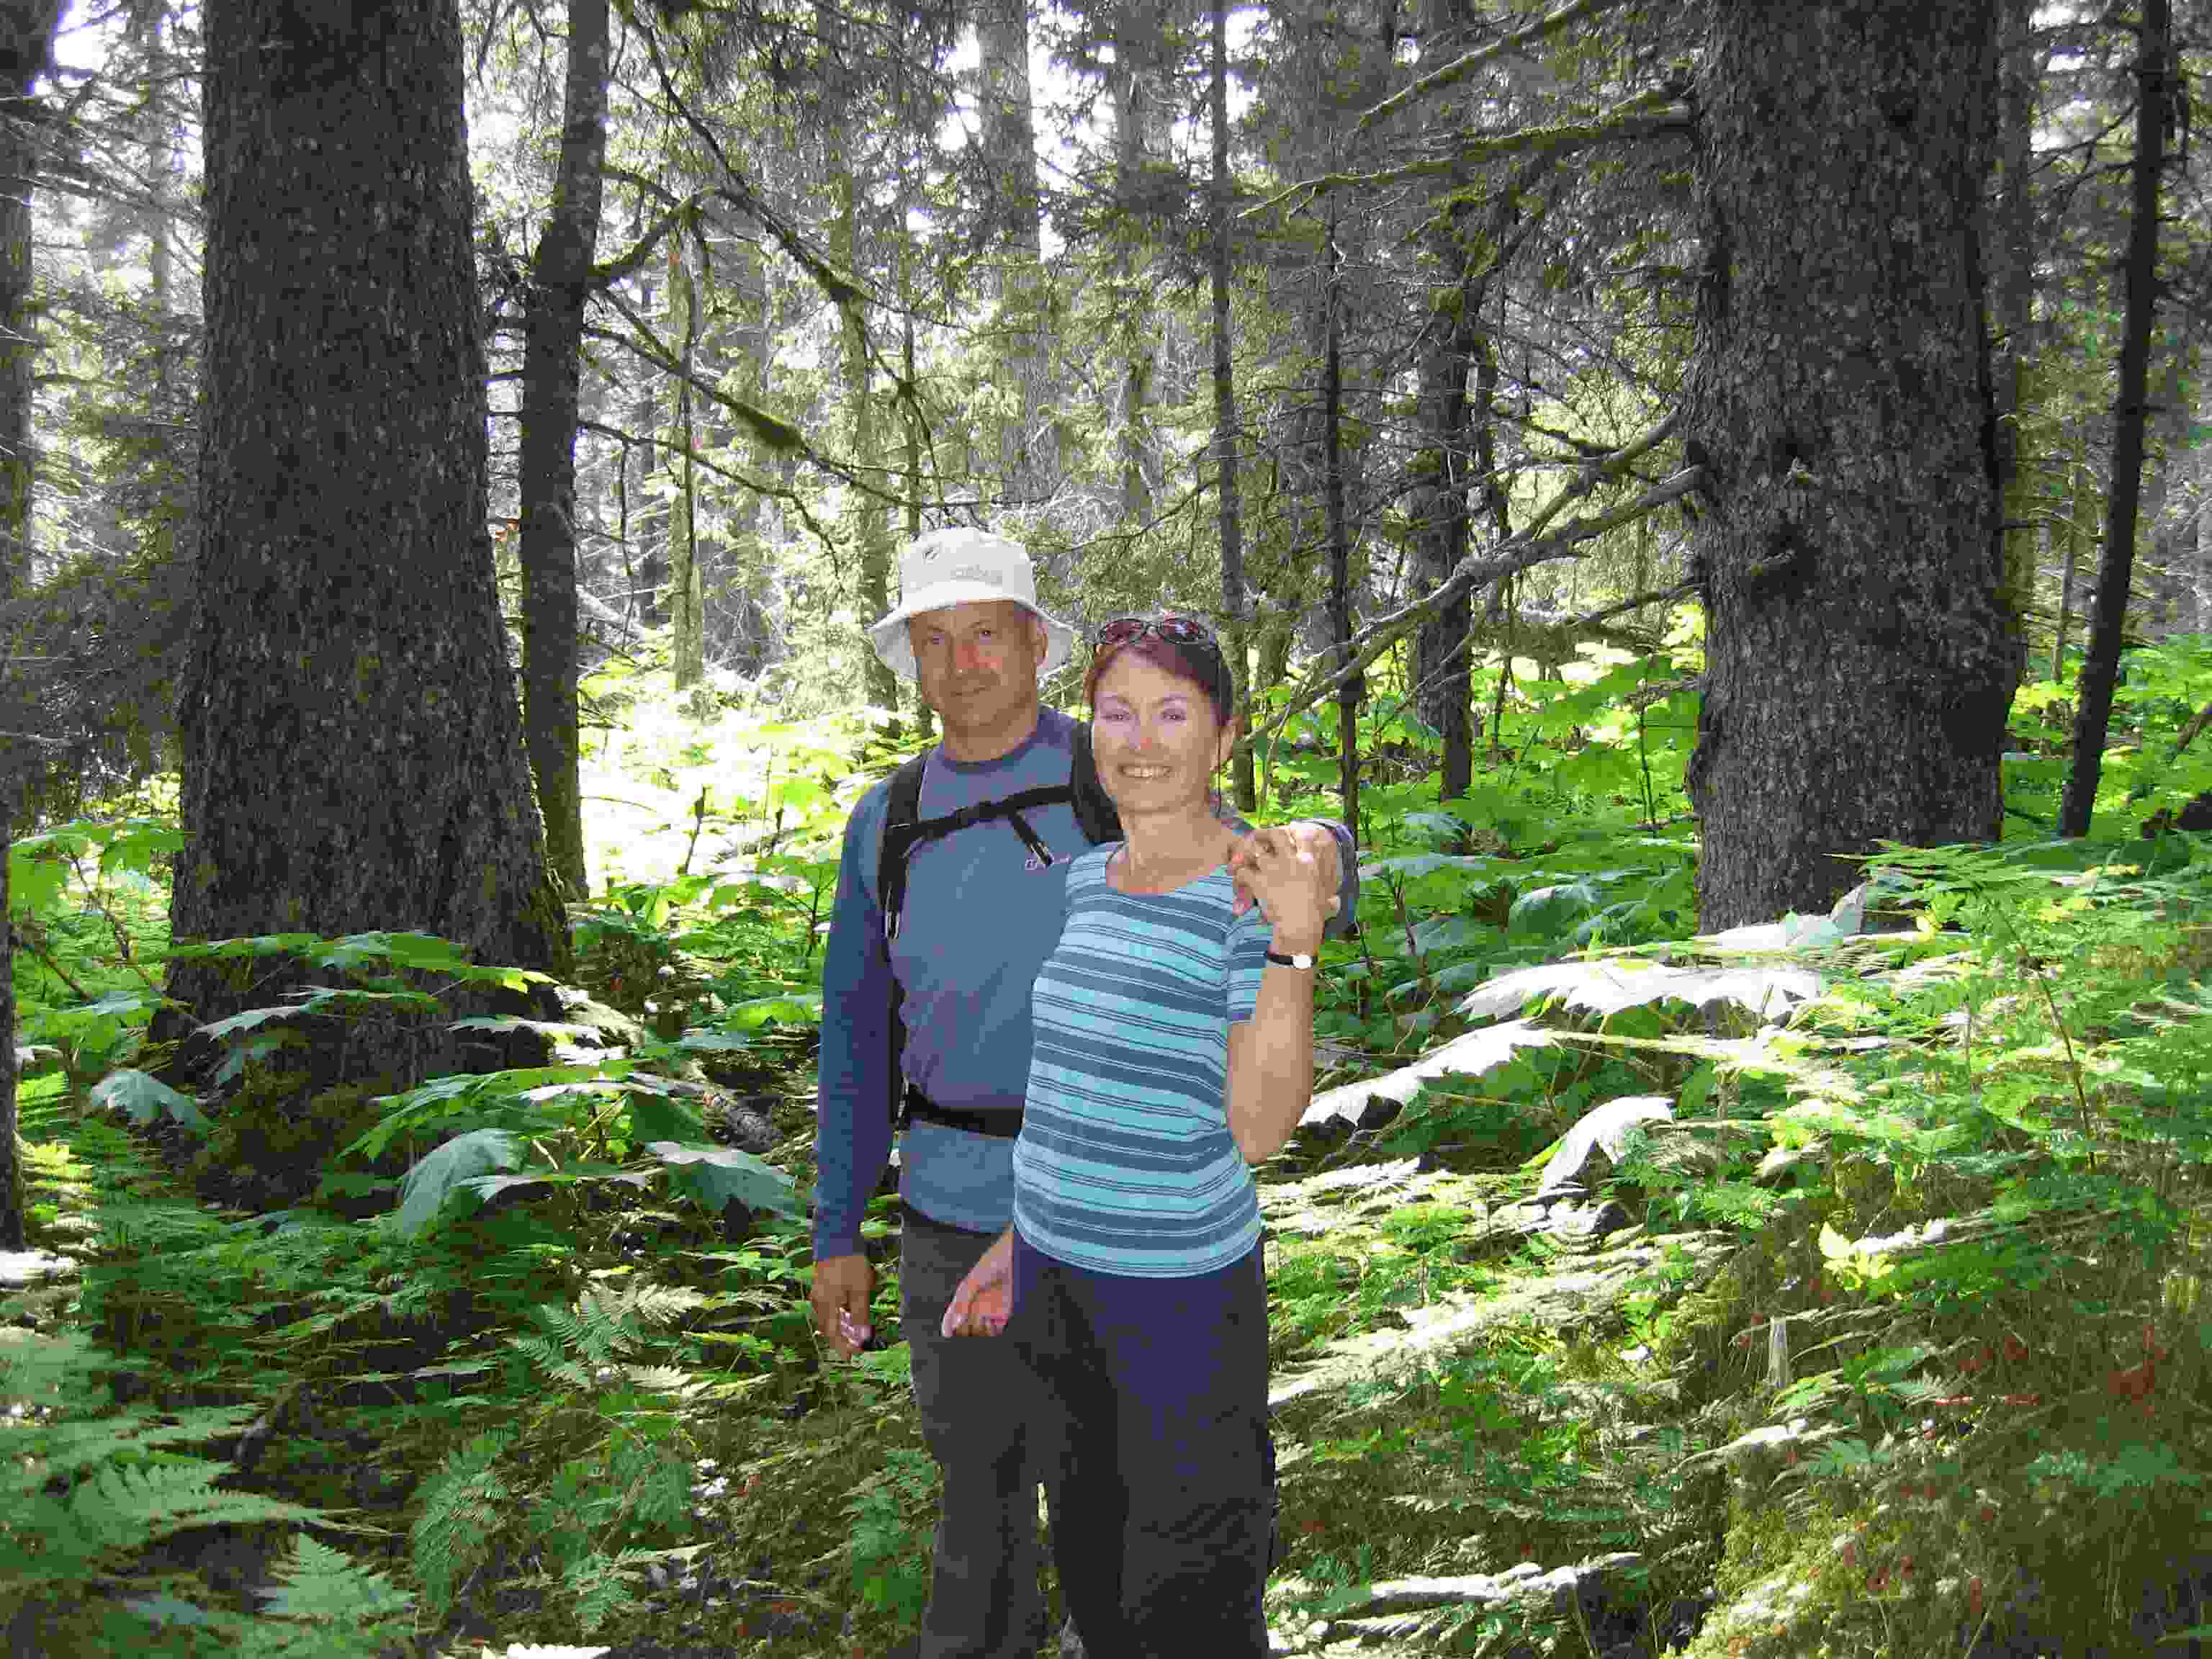 Hiking in Kachemak Bay gives one a treat to a heathy forest and lush undergrowth